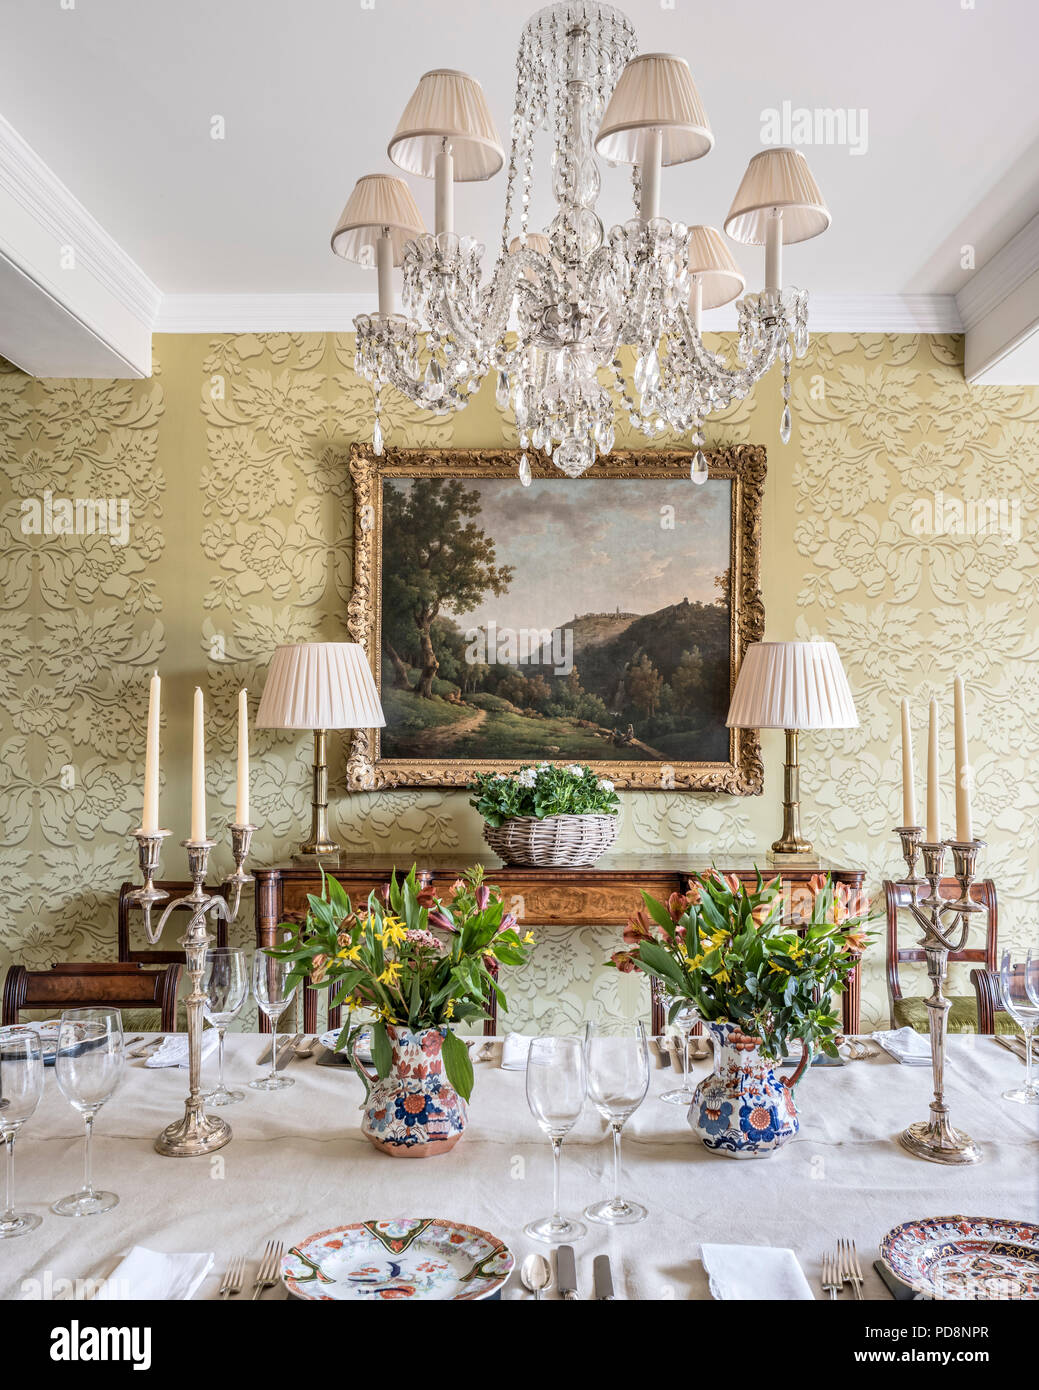 Large Framed Artwork In Dining Room With Glass Chandelier Stock Photo Alamy